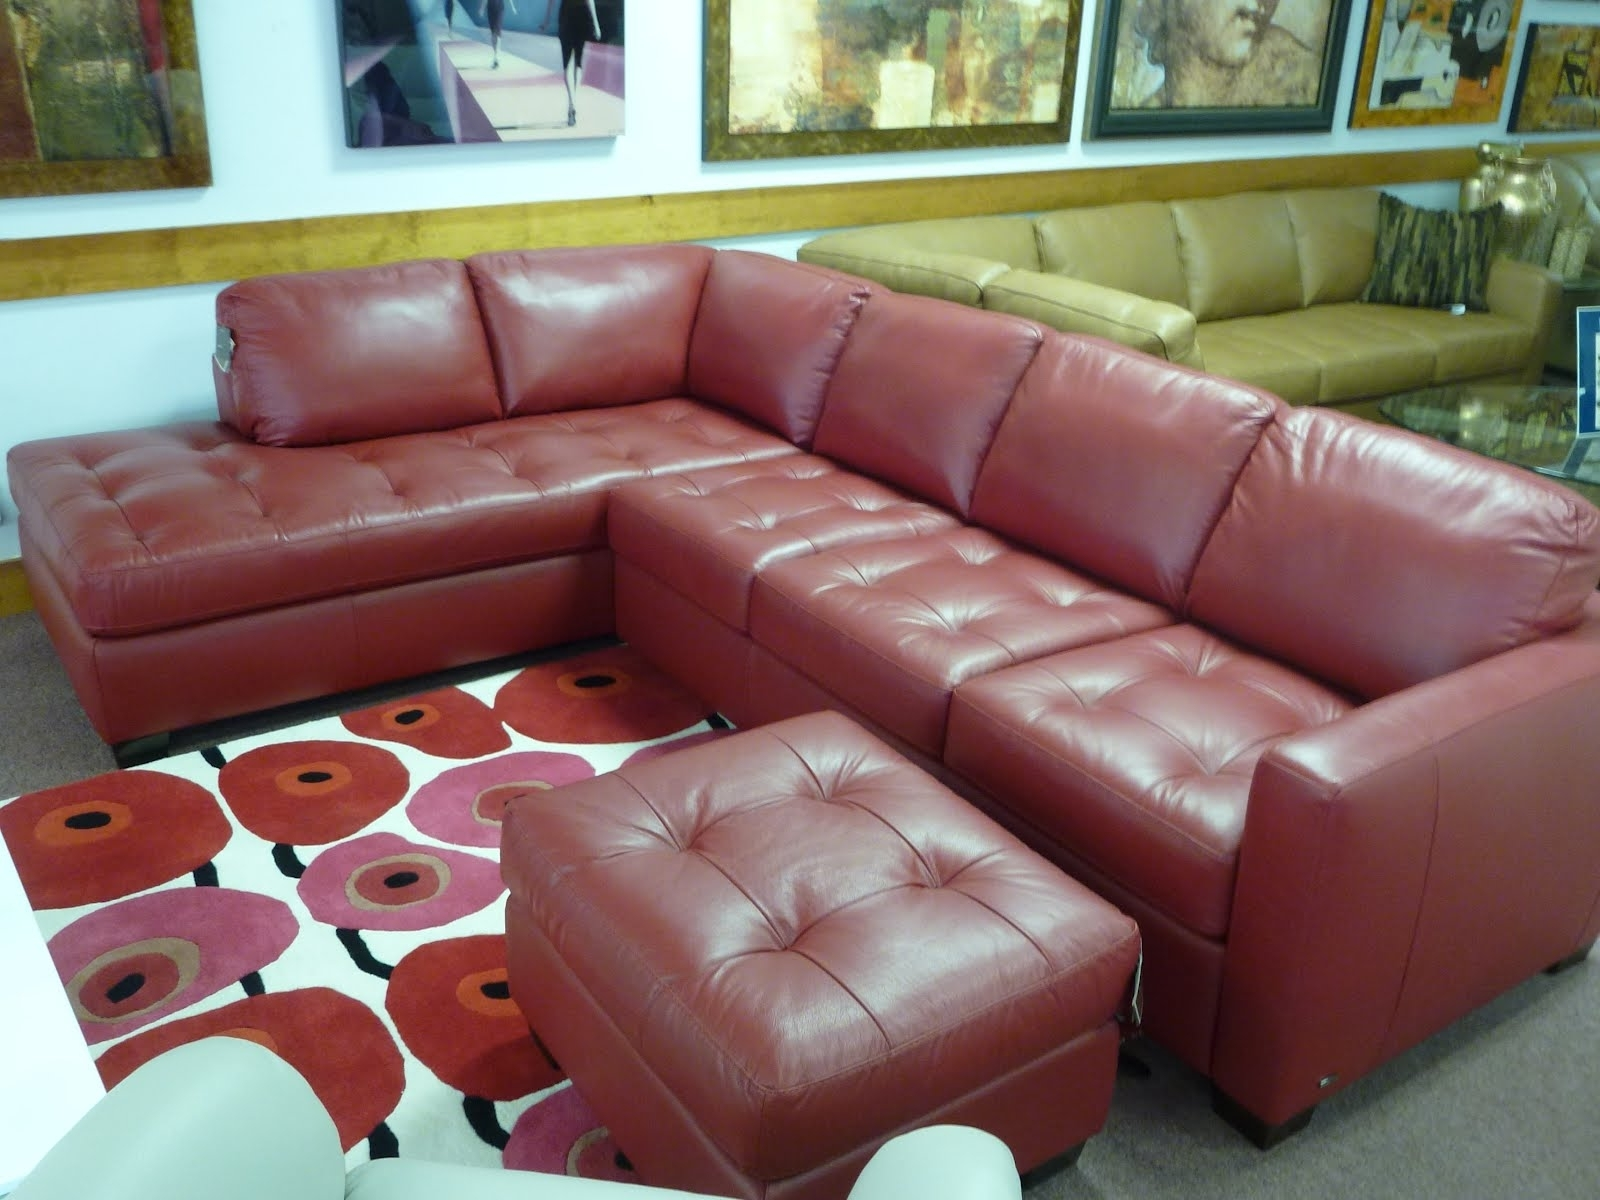 Sectional Sofa Design: Wonderful Natuzzi Leather Sectional Sofa Pertaining To Popular Red Leather Sectionals With Ottoman (View 12 of 20)